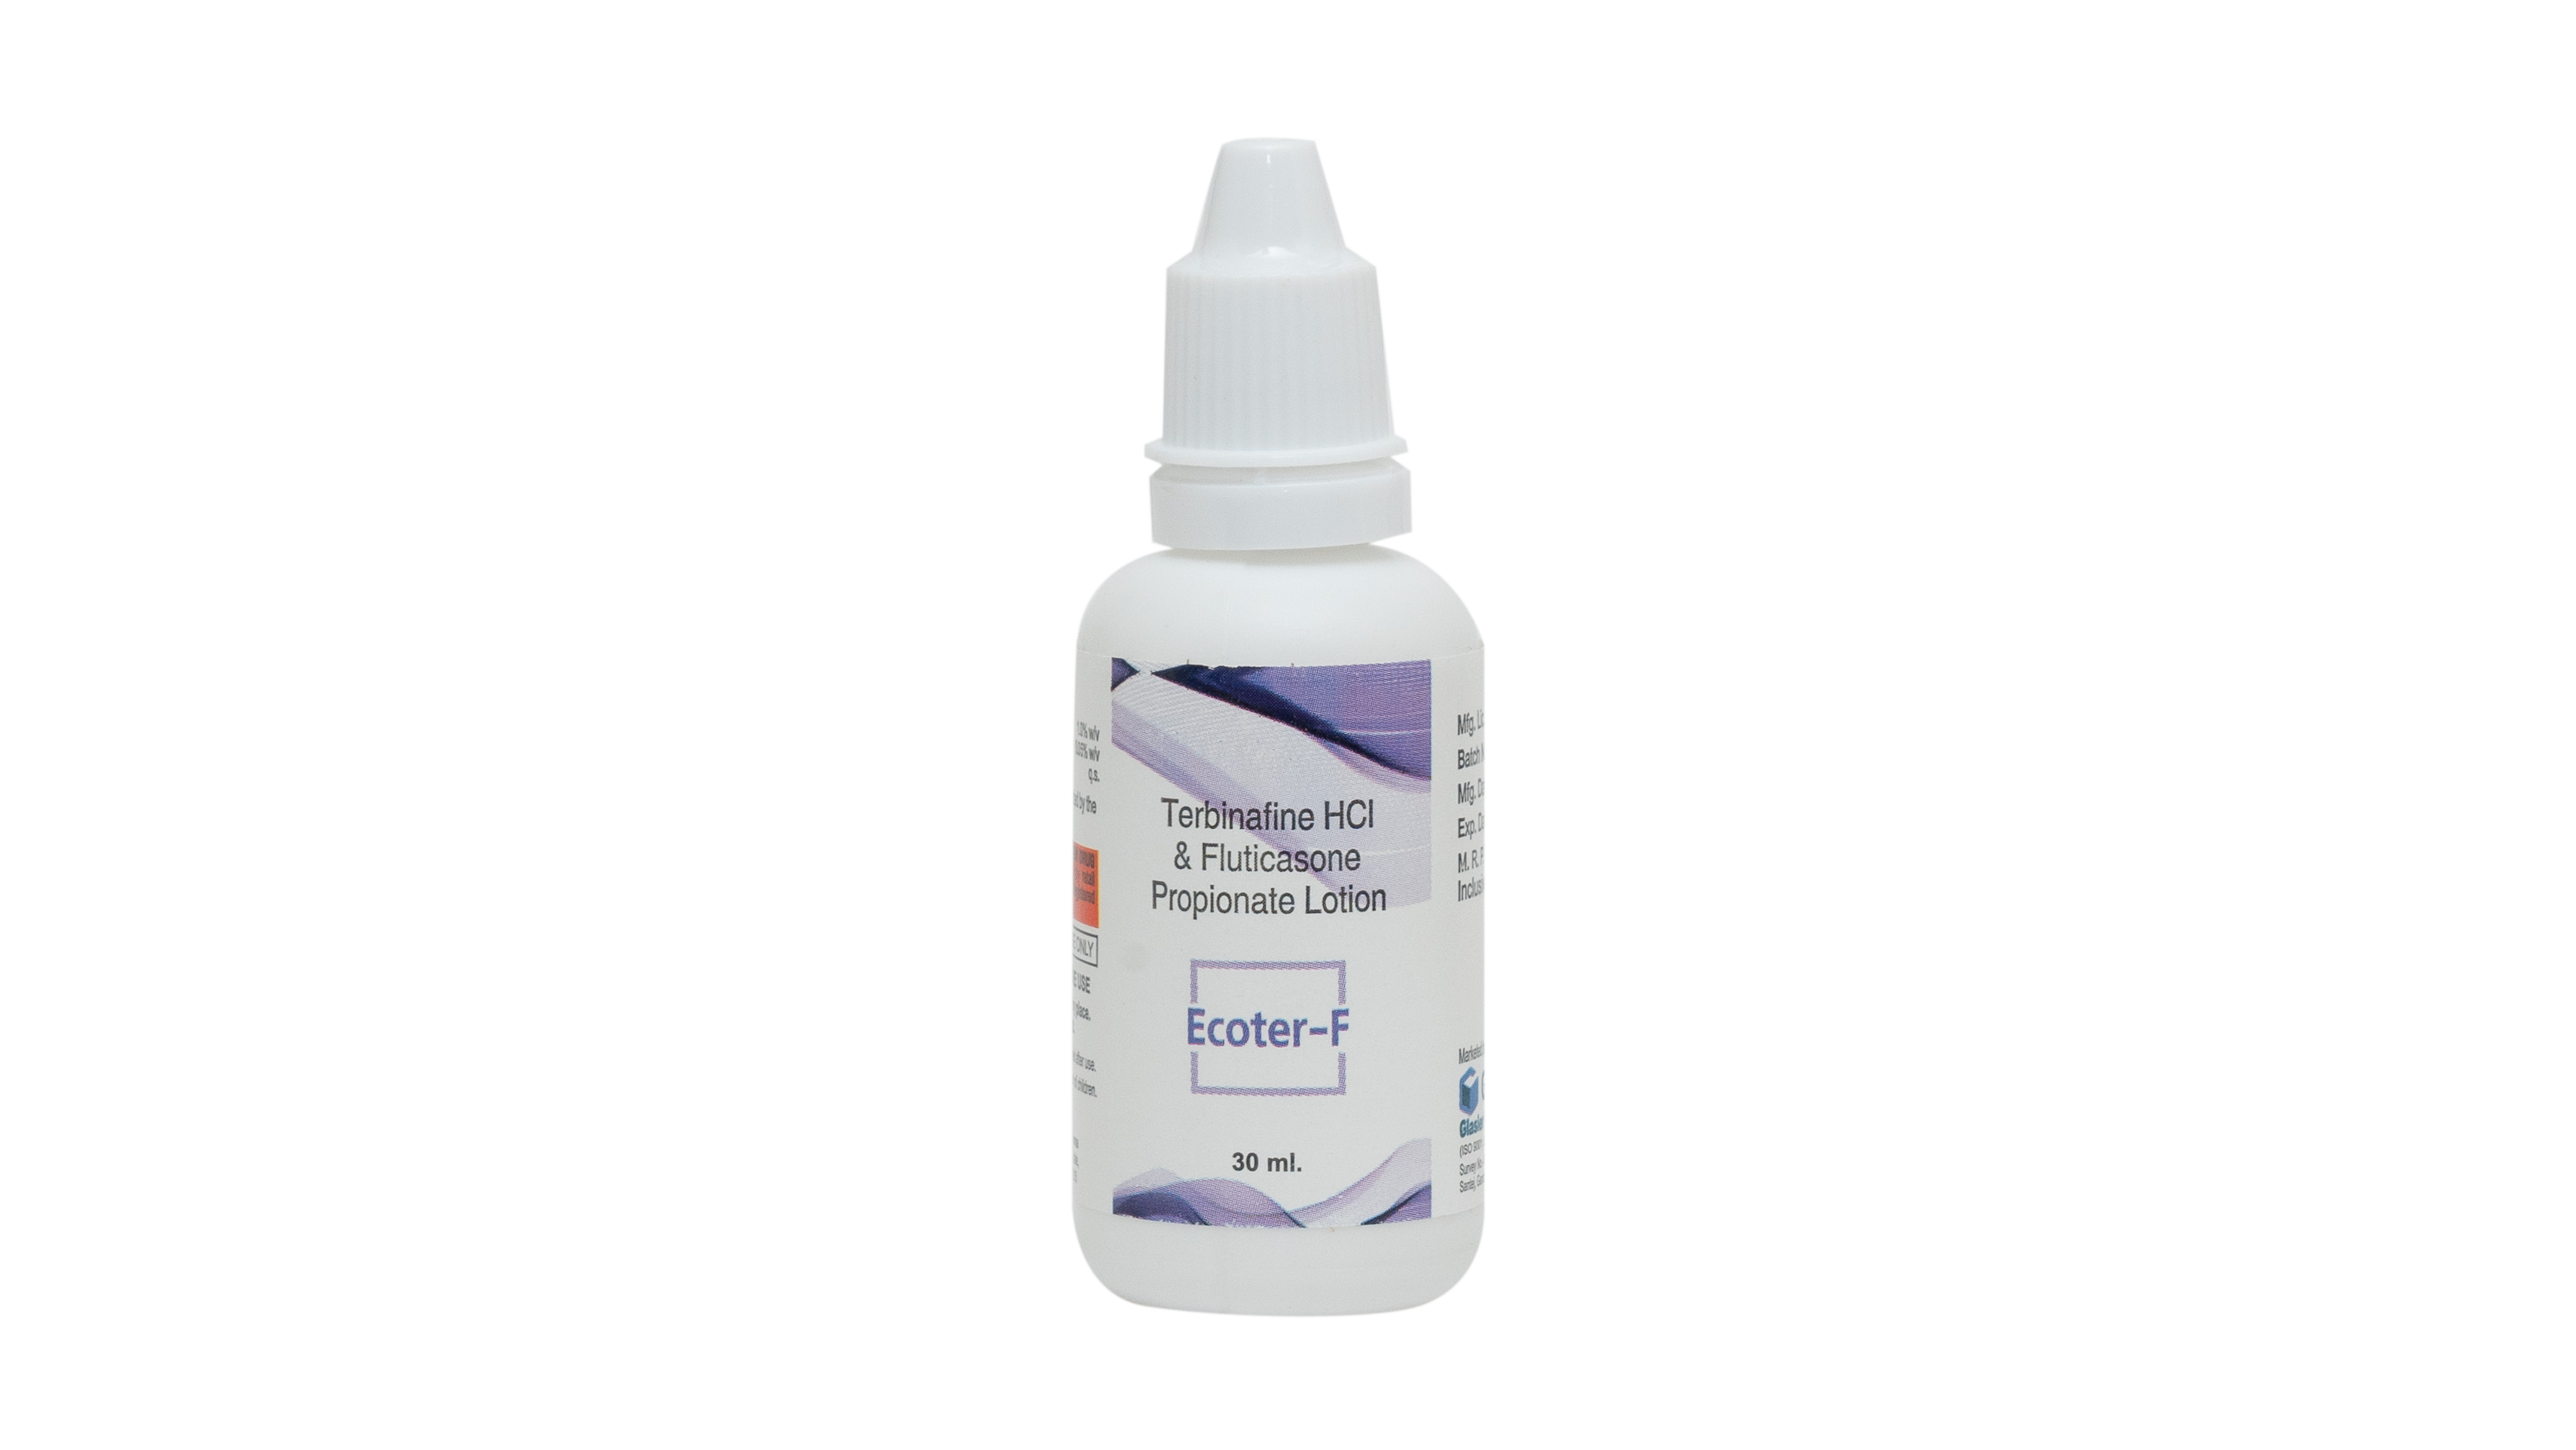 Terbinafine 1 %+ fluticasone propionate 0.05% Lotion